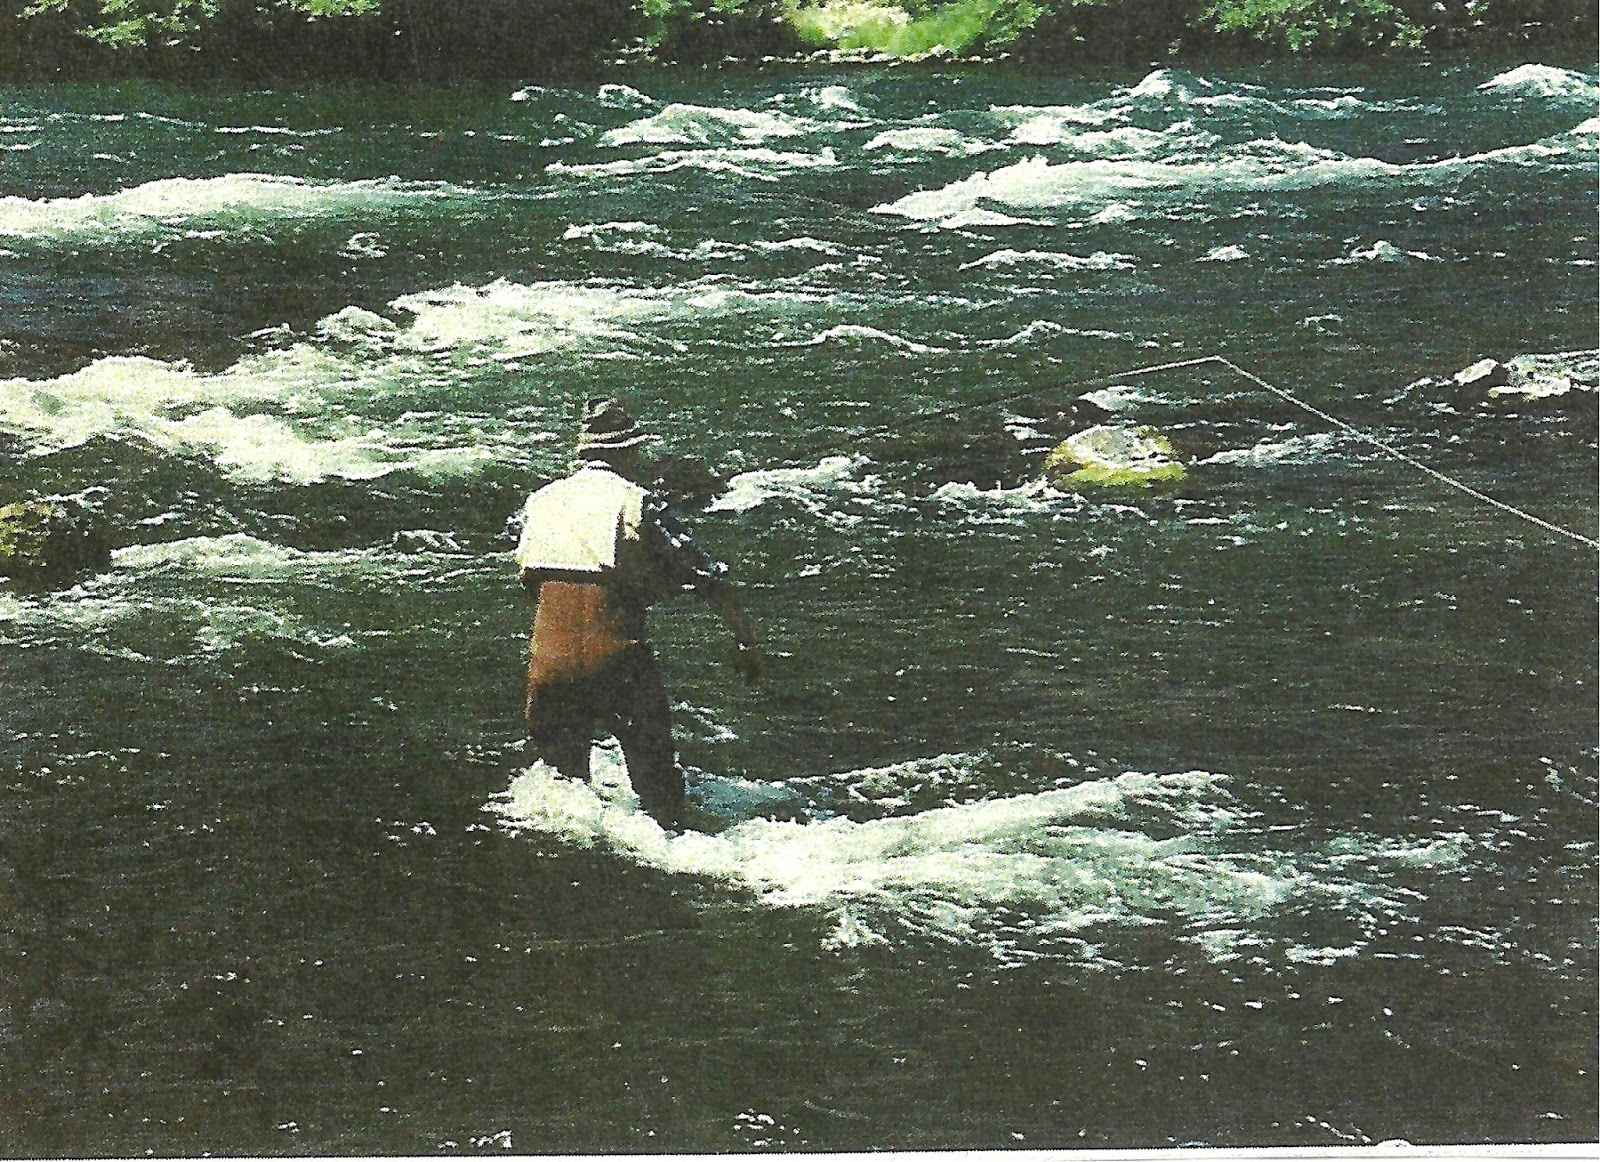 A back view picture of Doug Stewart  balancing himself in fast water rapids on the Deschutes River while fly fishing for steelhead